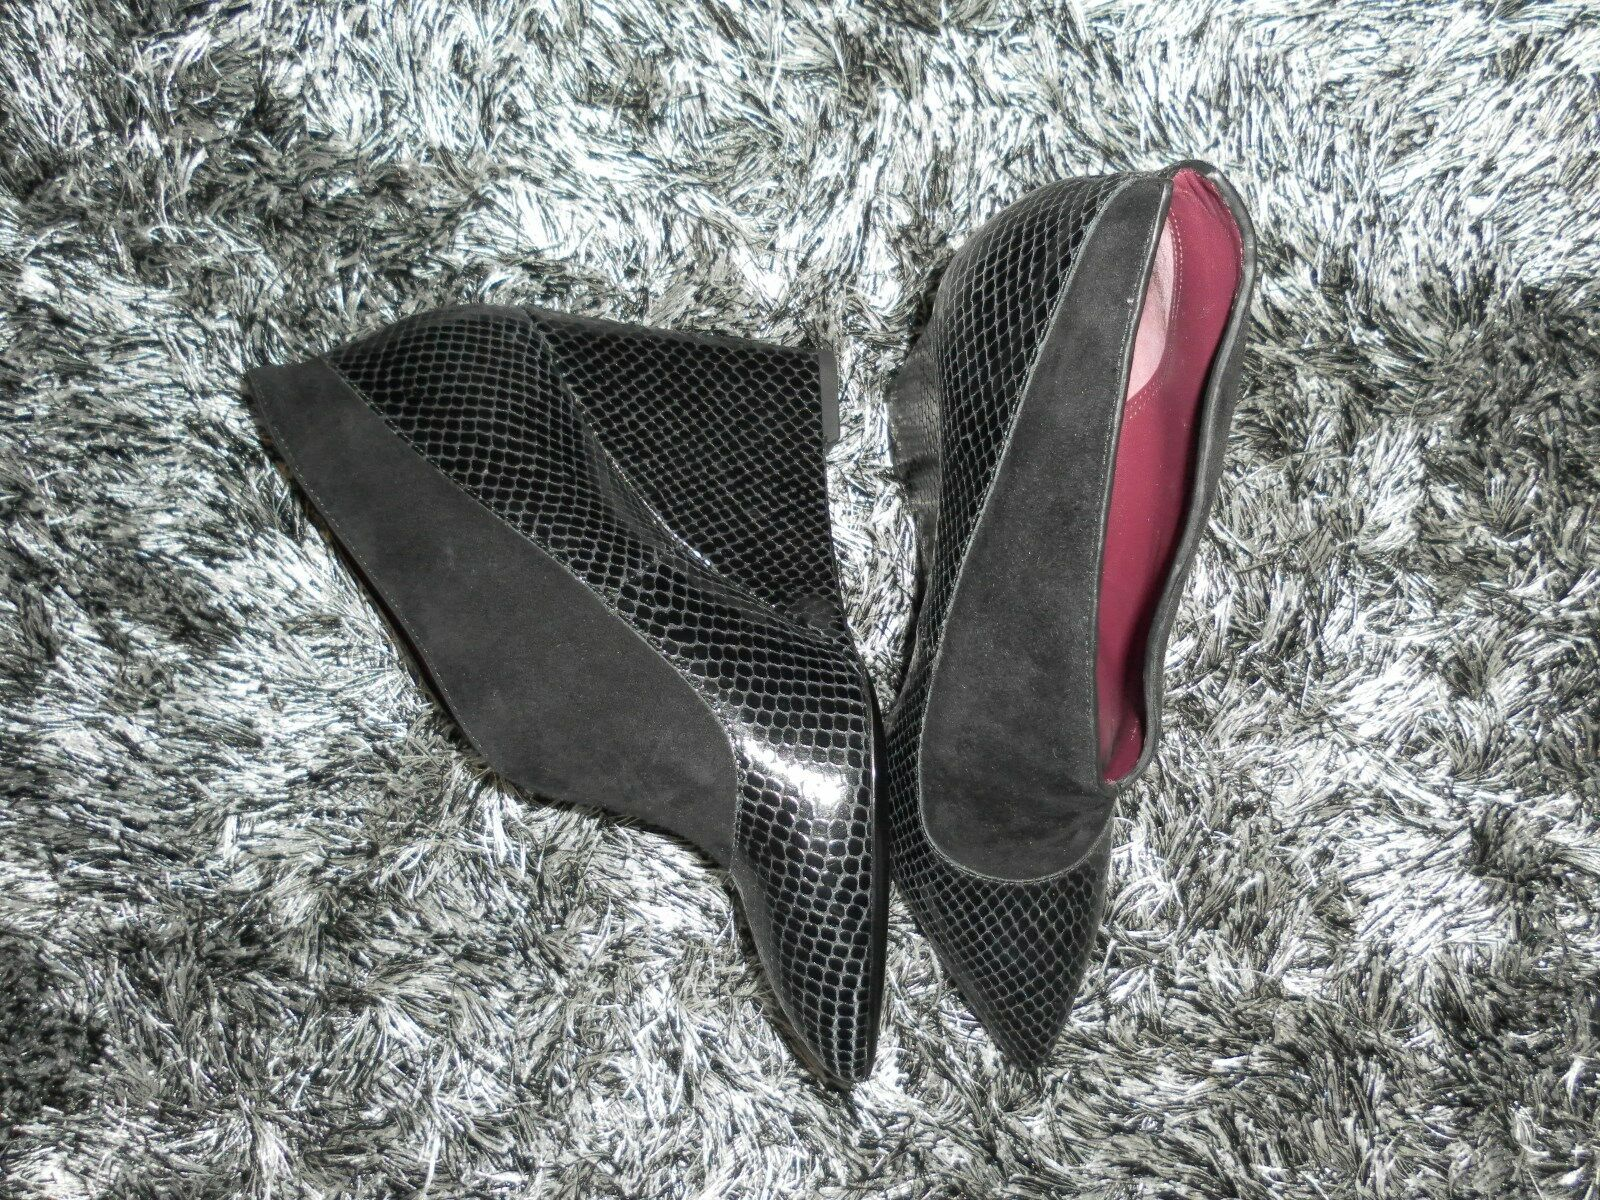 398 Marc By Marc Jacobs Mae Mae Mae Black Leather Suede Wedge Booties Size 38 US 8 8f25c9